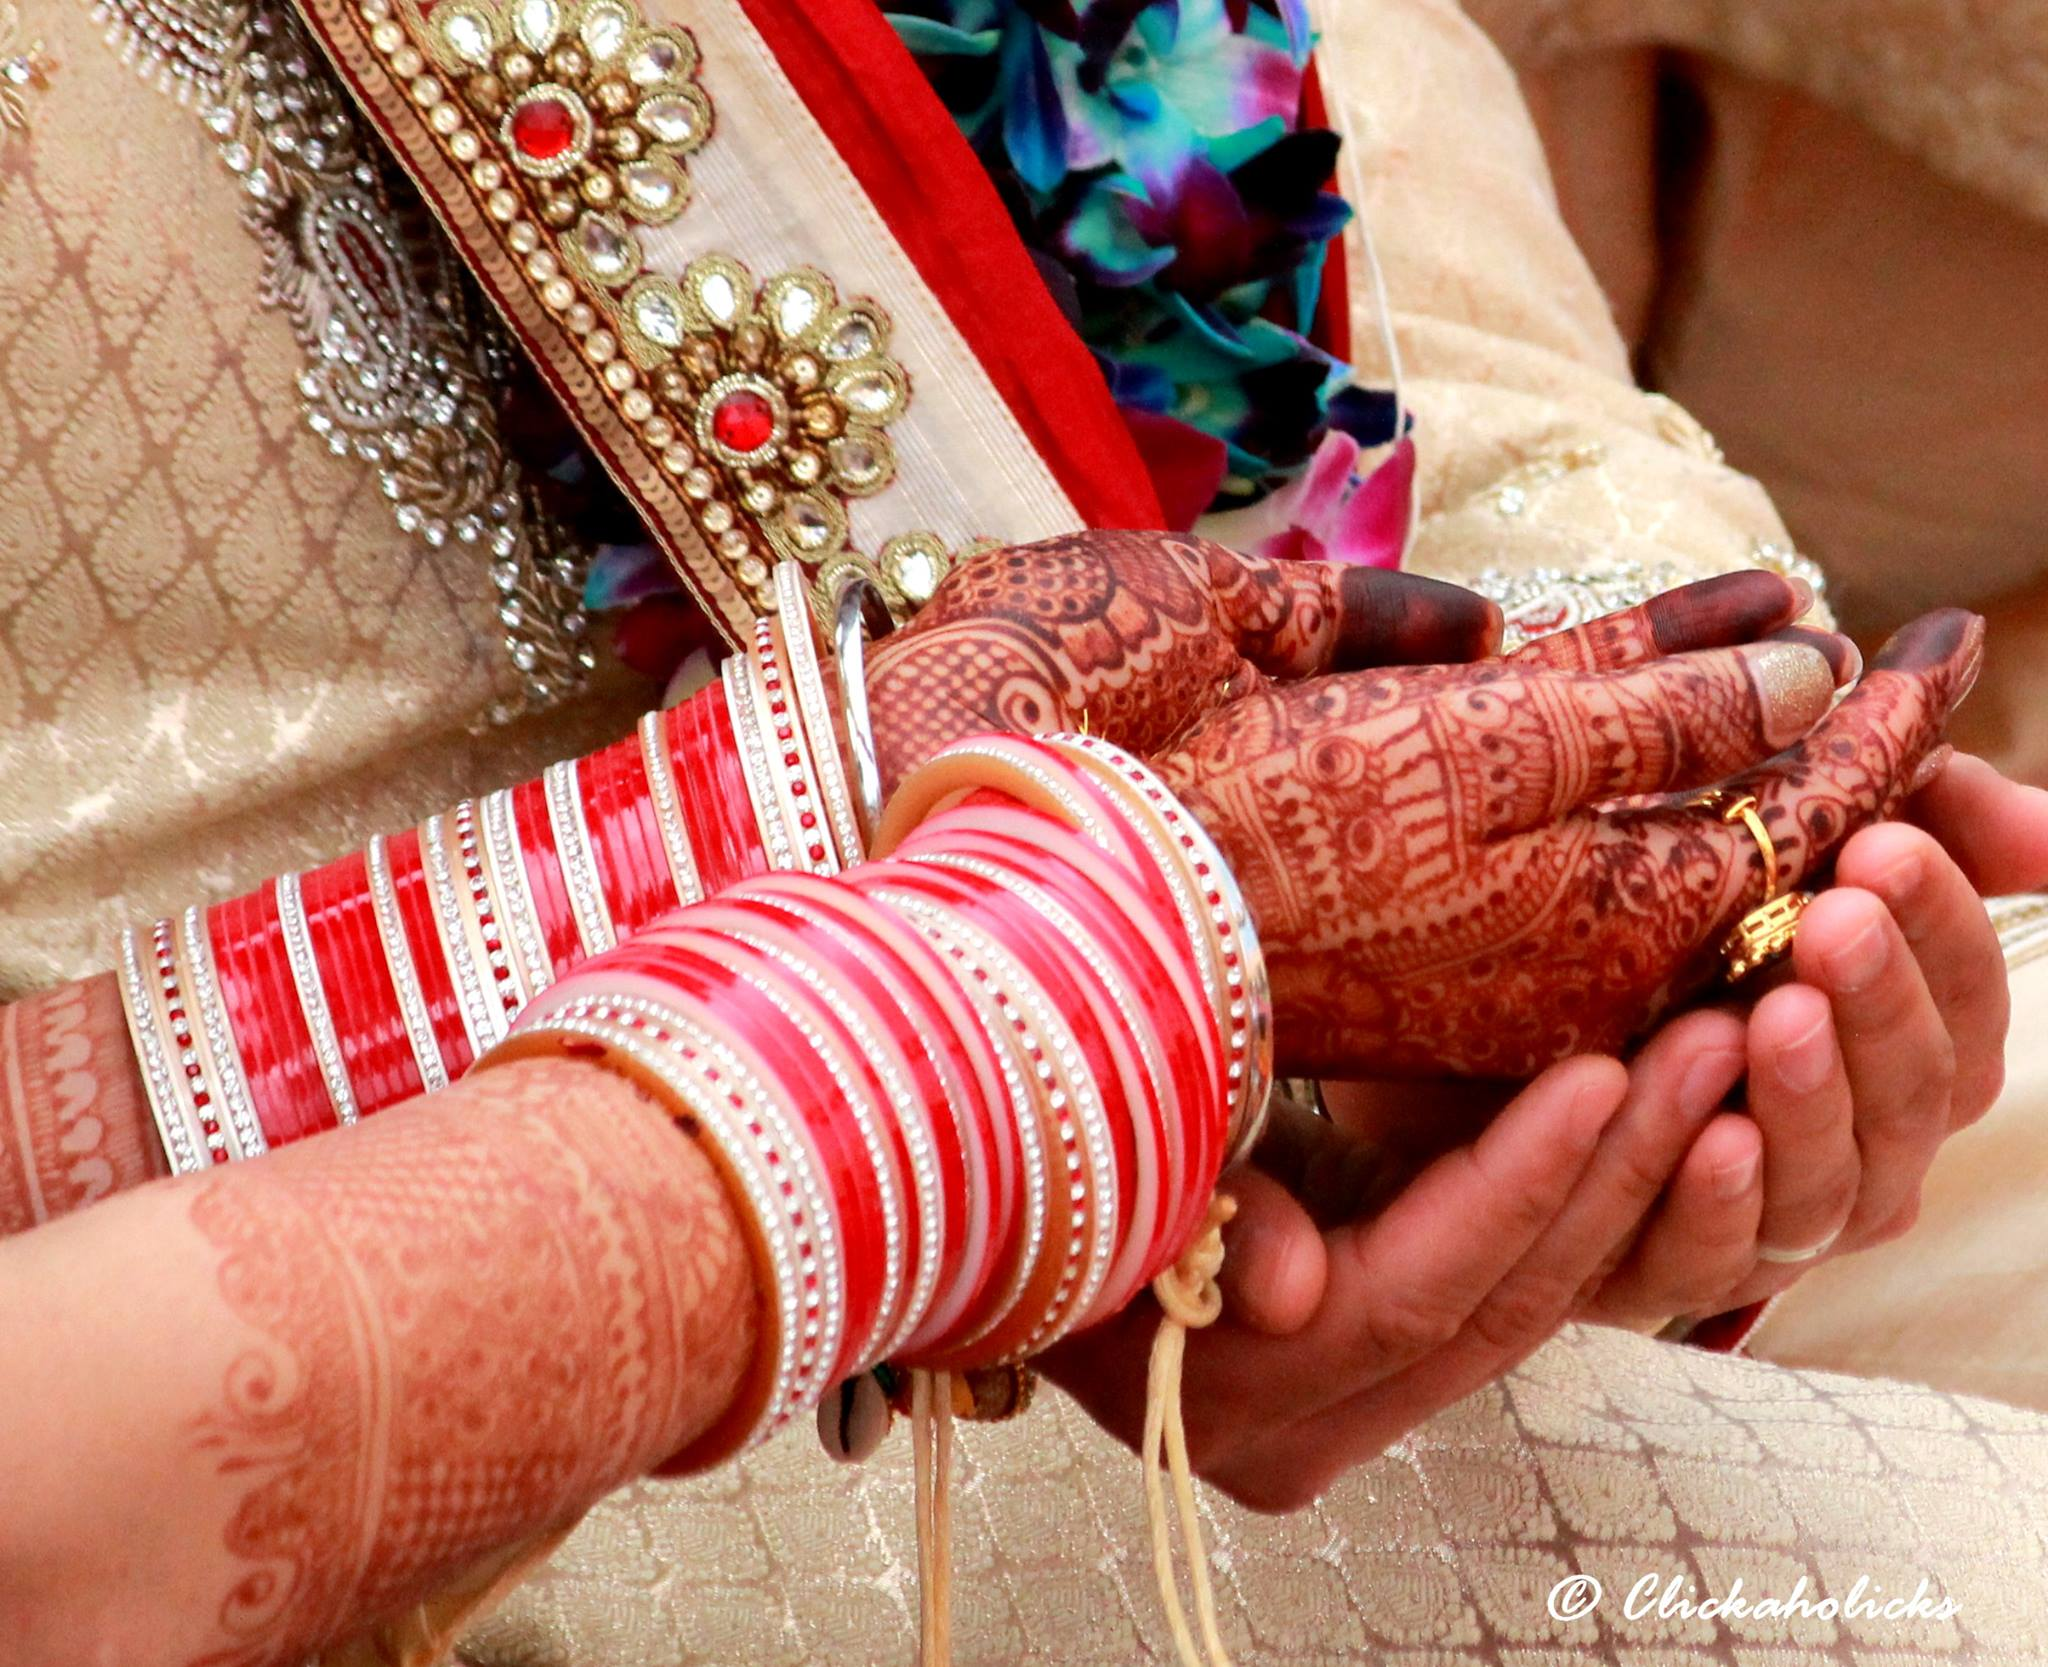 Marriage, is it a sexist institution disguised as tradition?